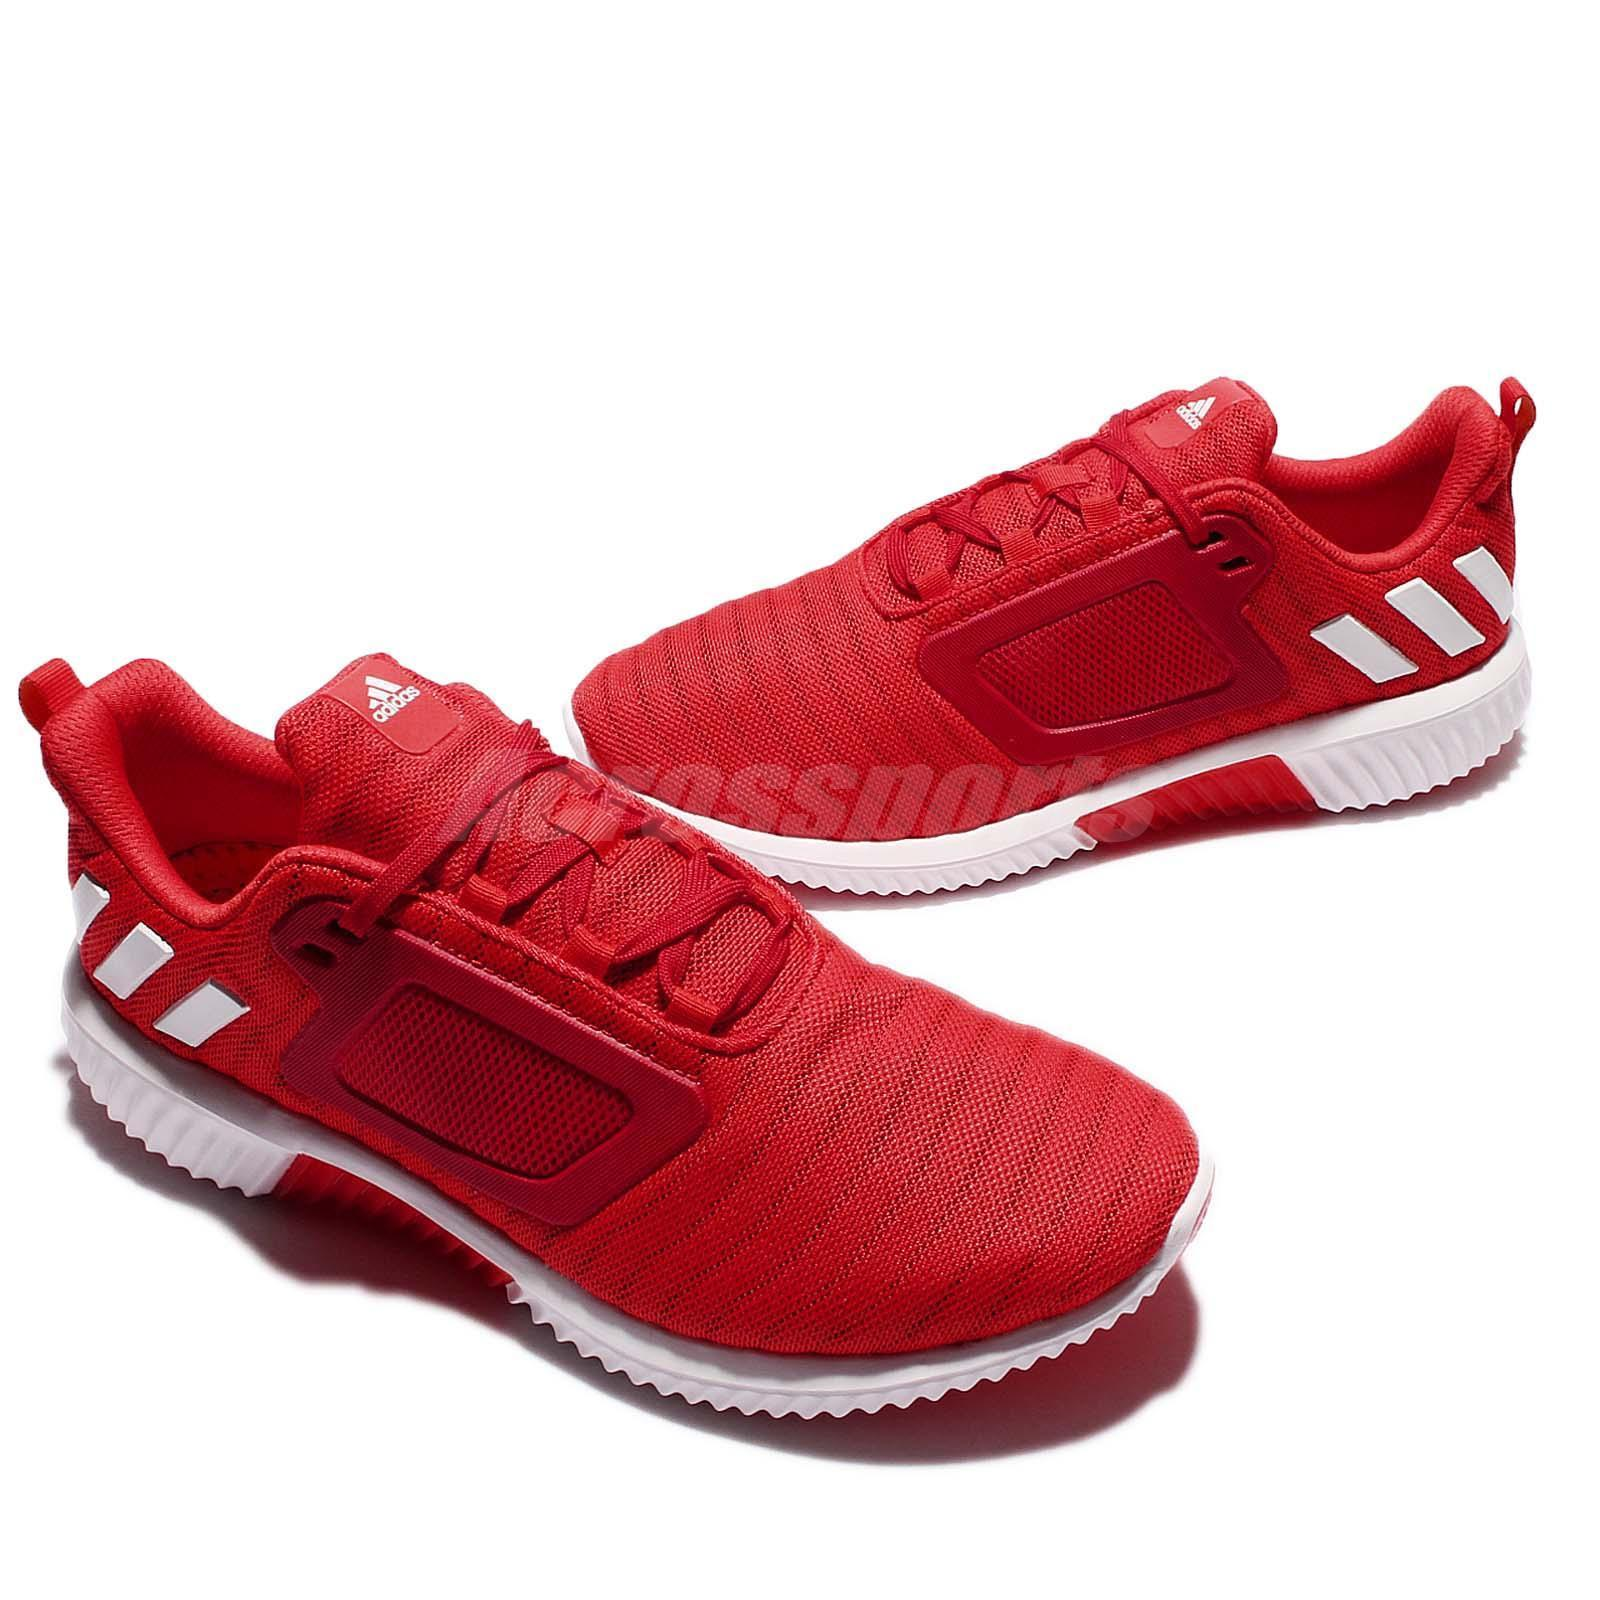 Adidas Climacool - Red-Full All - WearTesters